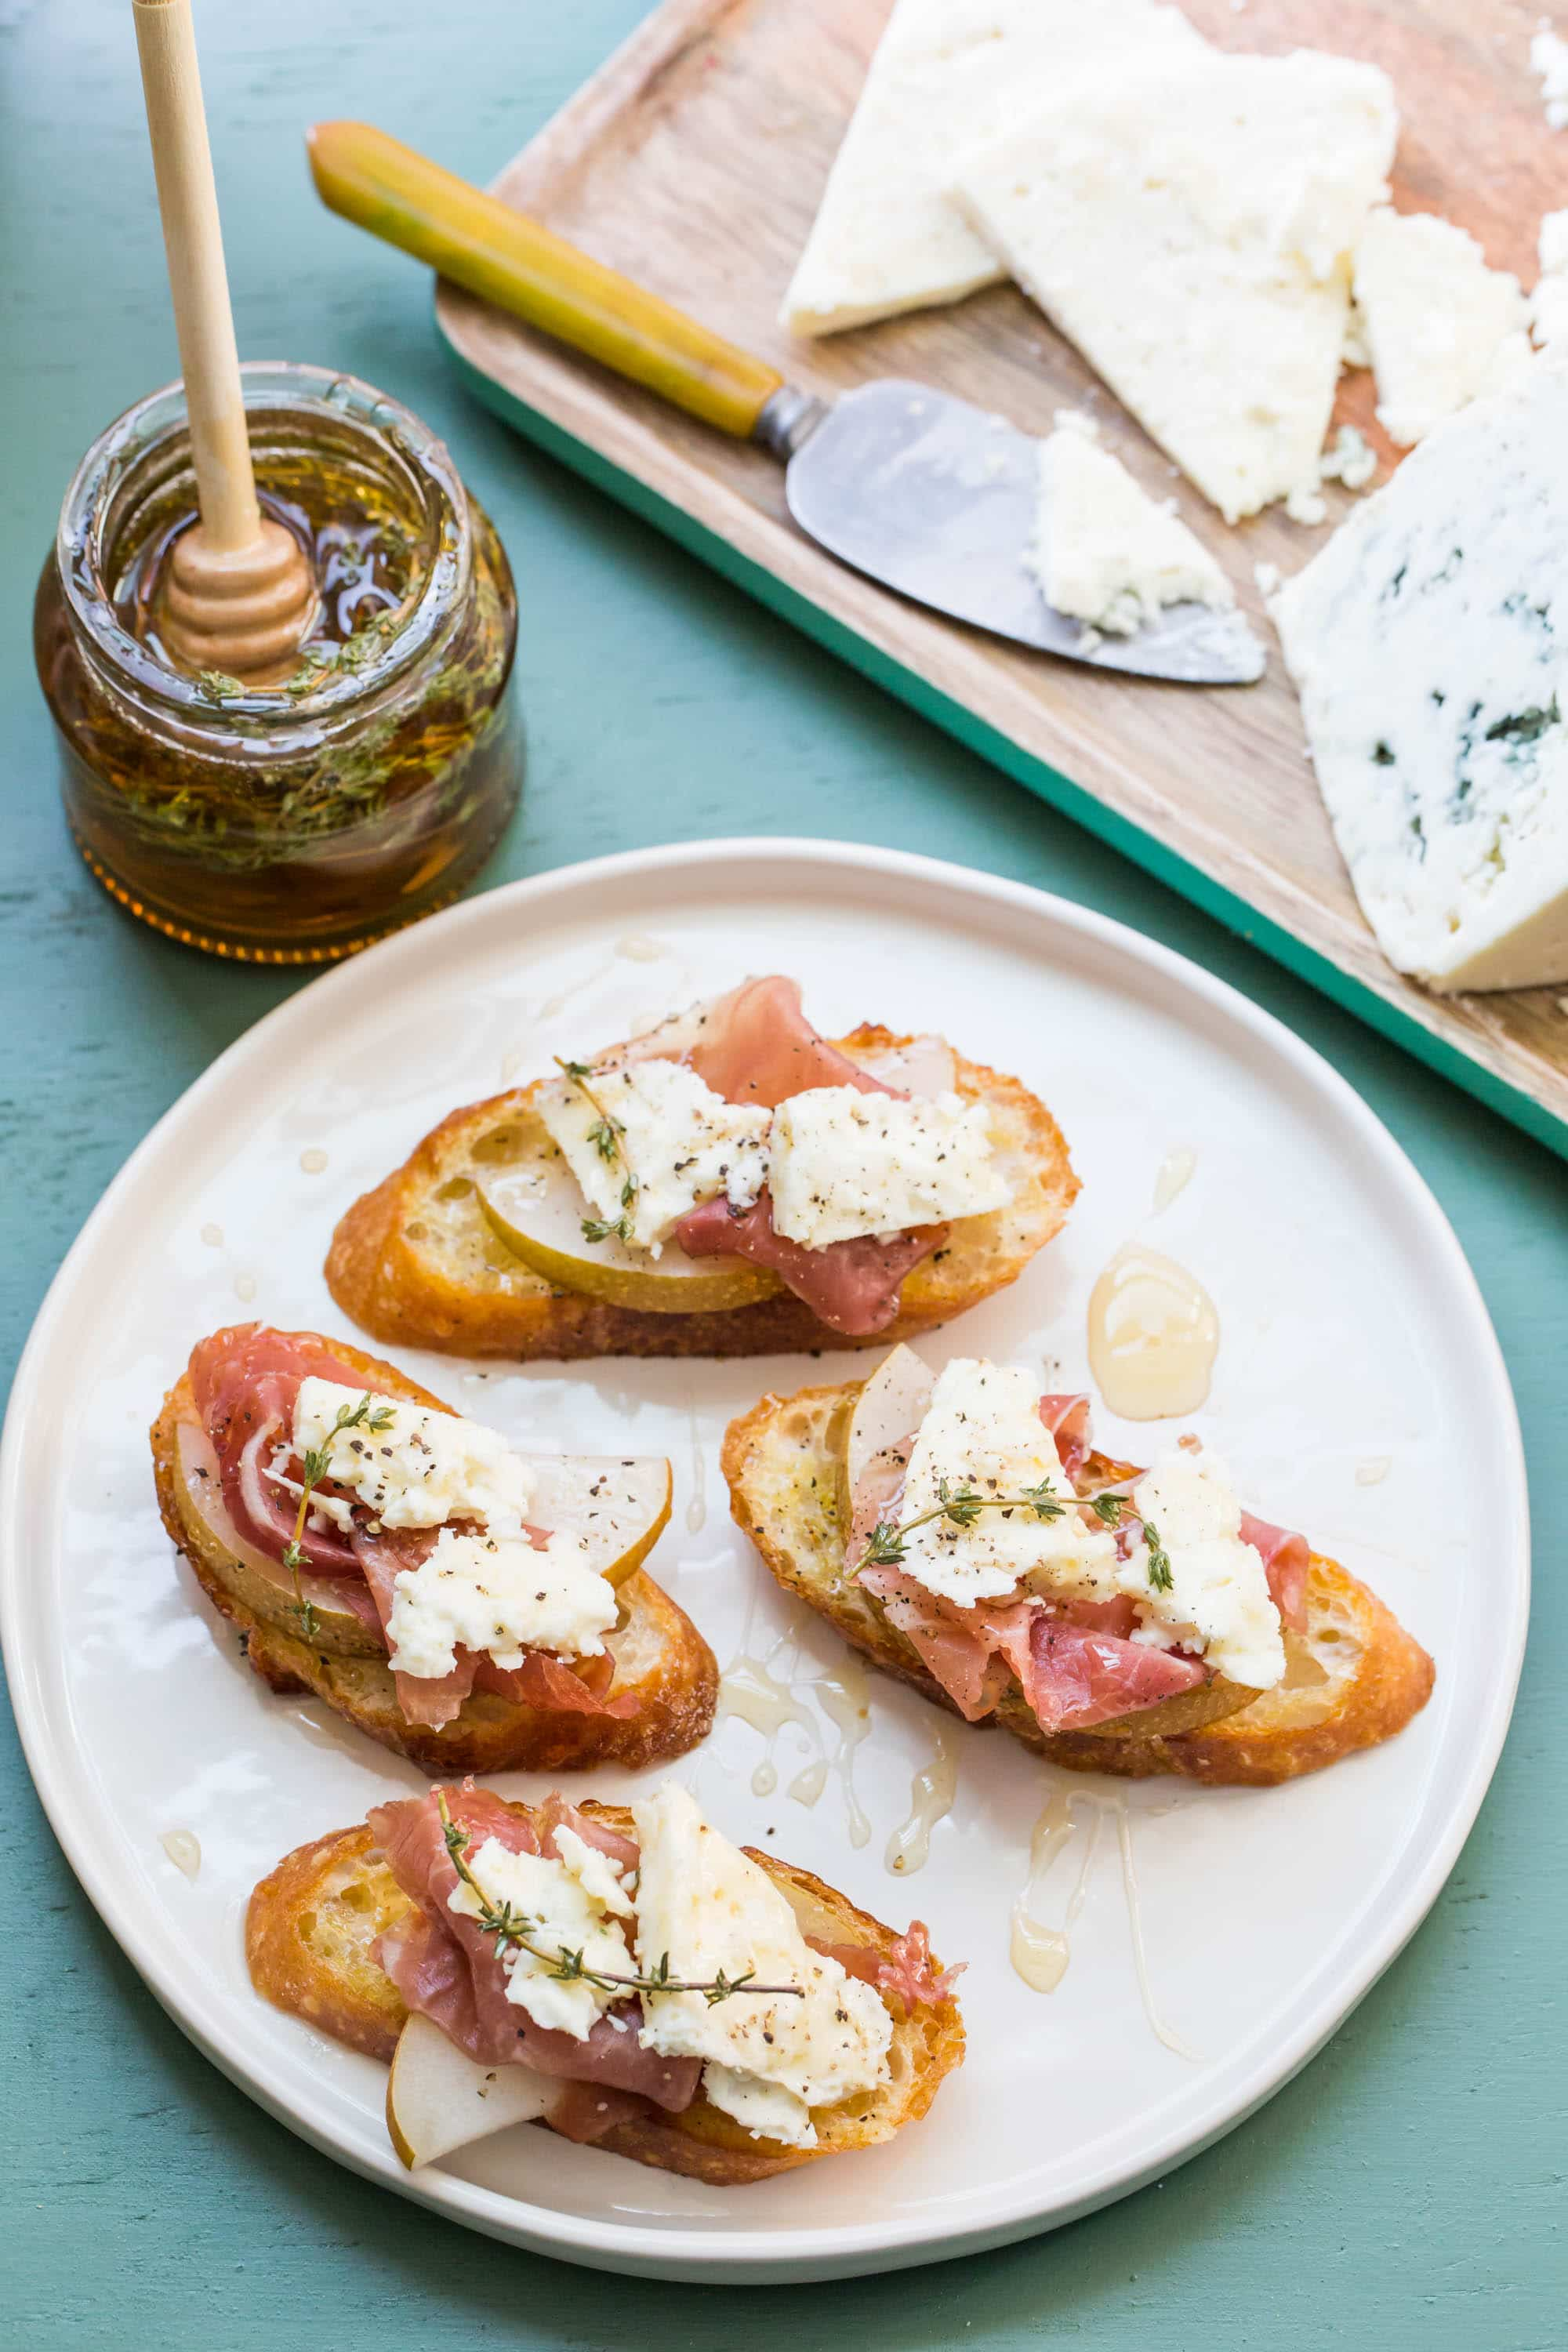 There is no better appetizer for parties than bruschetta and crostini. Both are pieces of toast with toppings, but what\'s the difference? #bruschetta #crostini #partyfood #fingerfood #appetizer